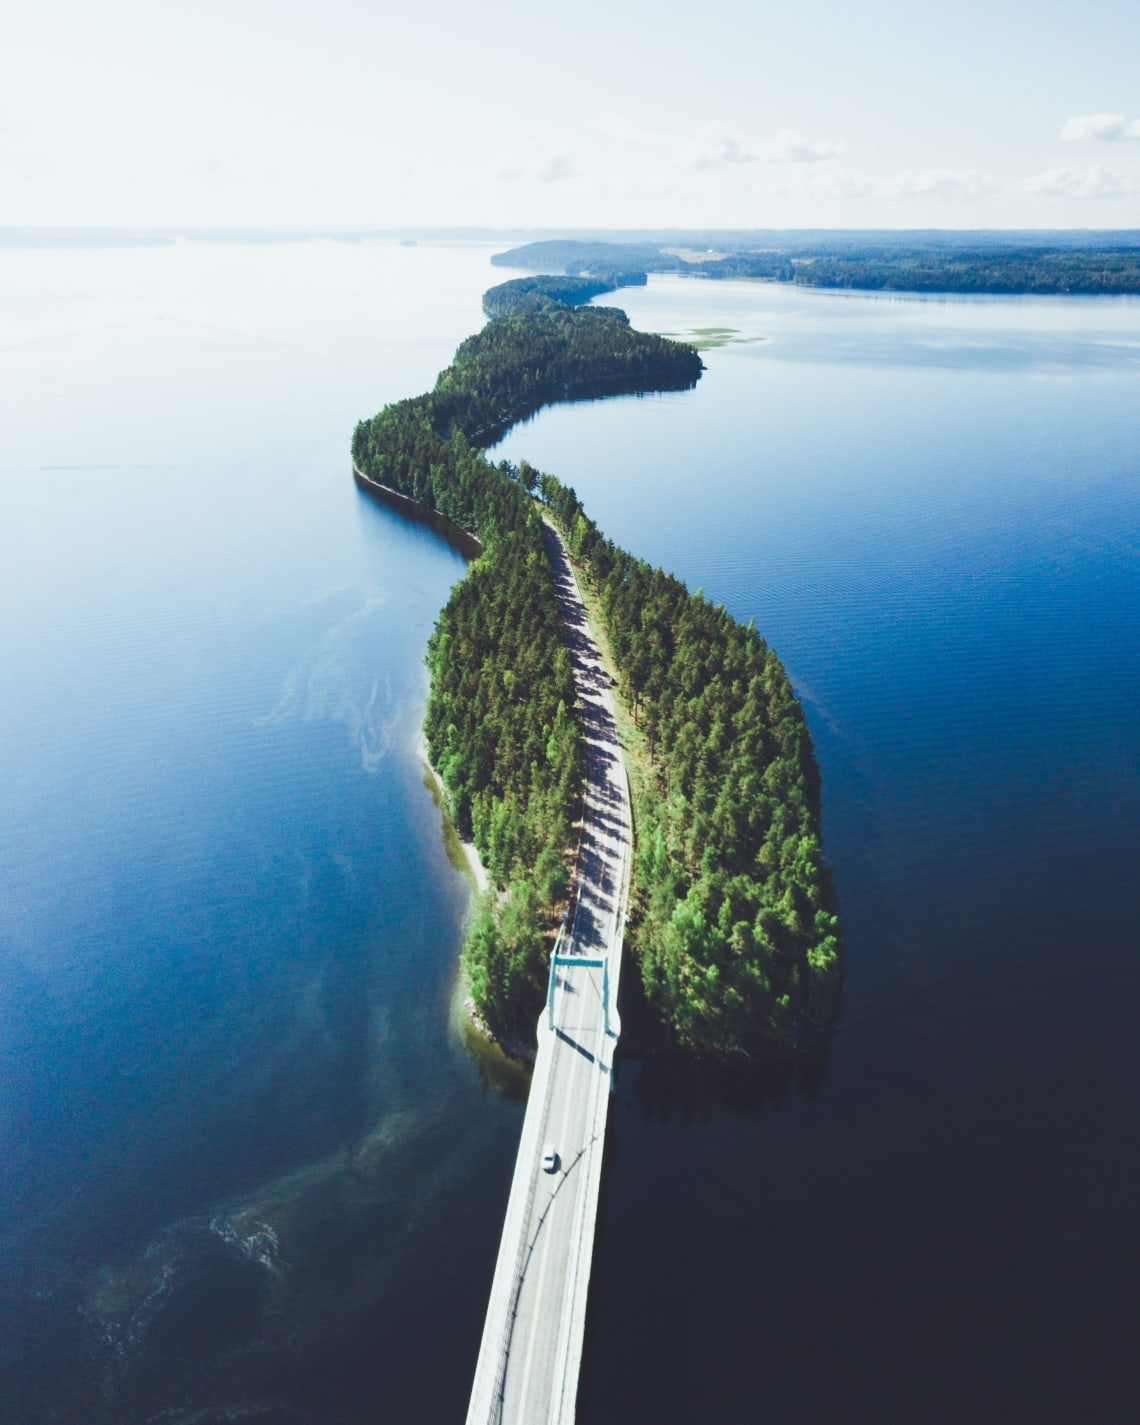 Unique road in Asikkala, Finland